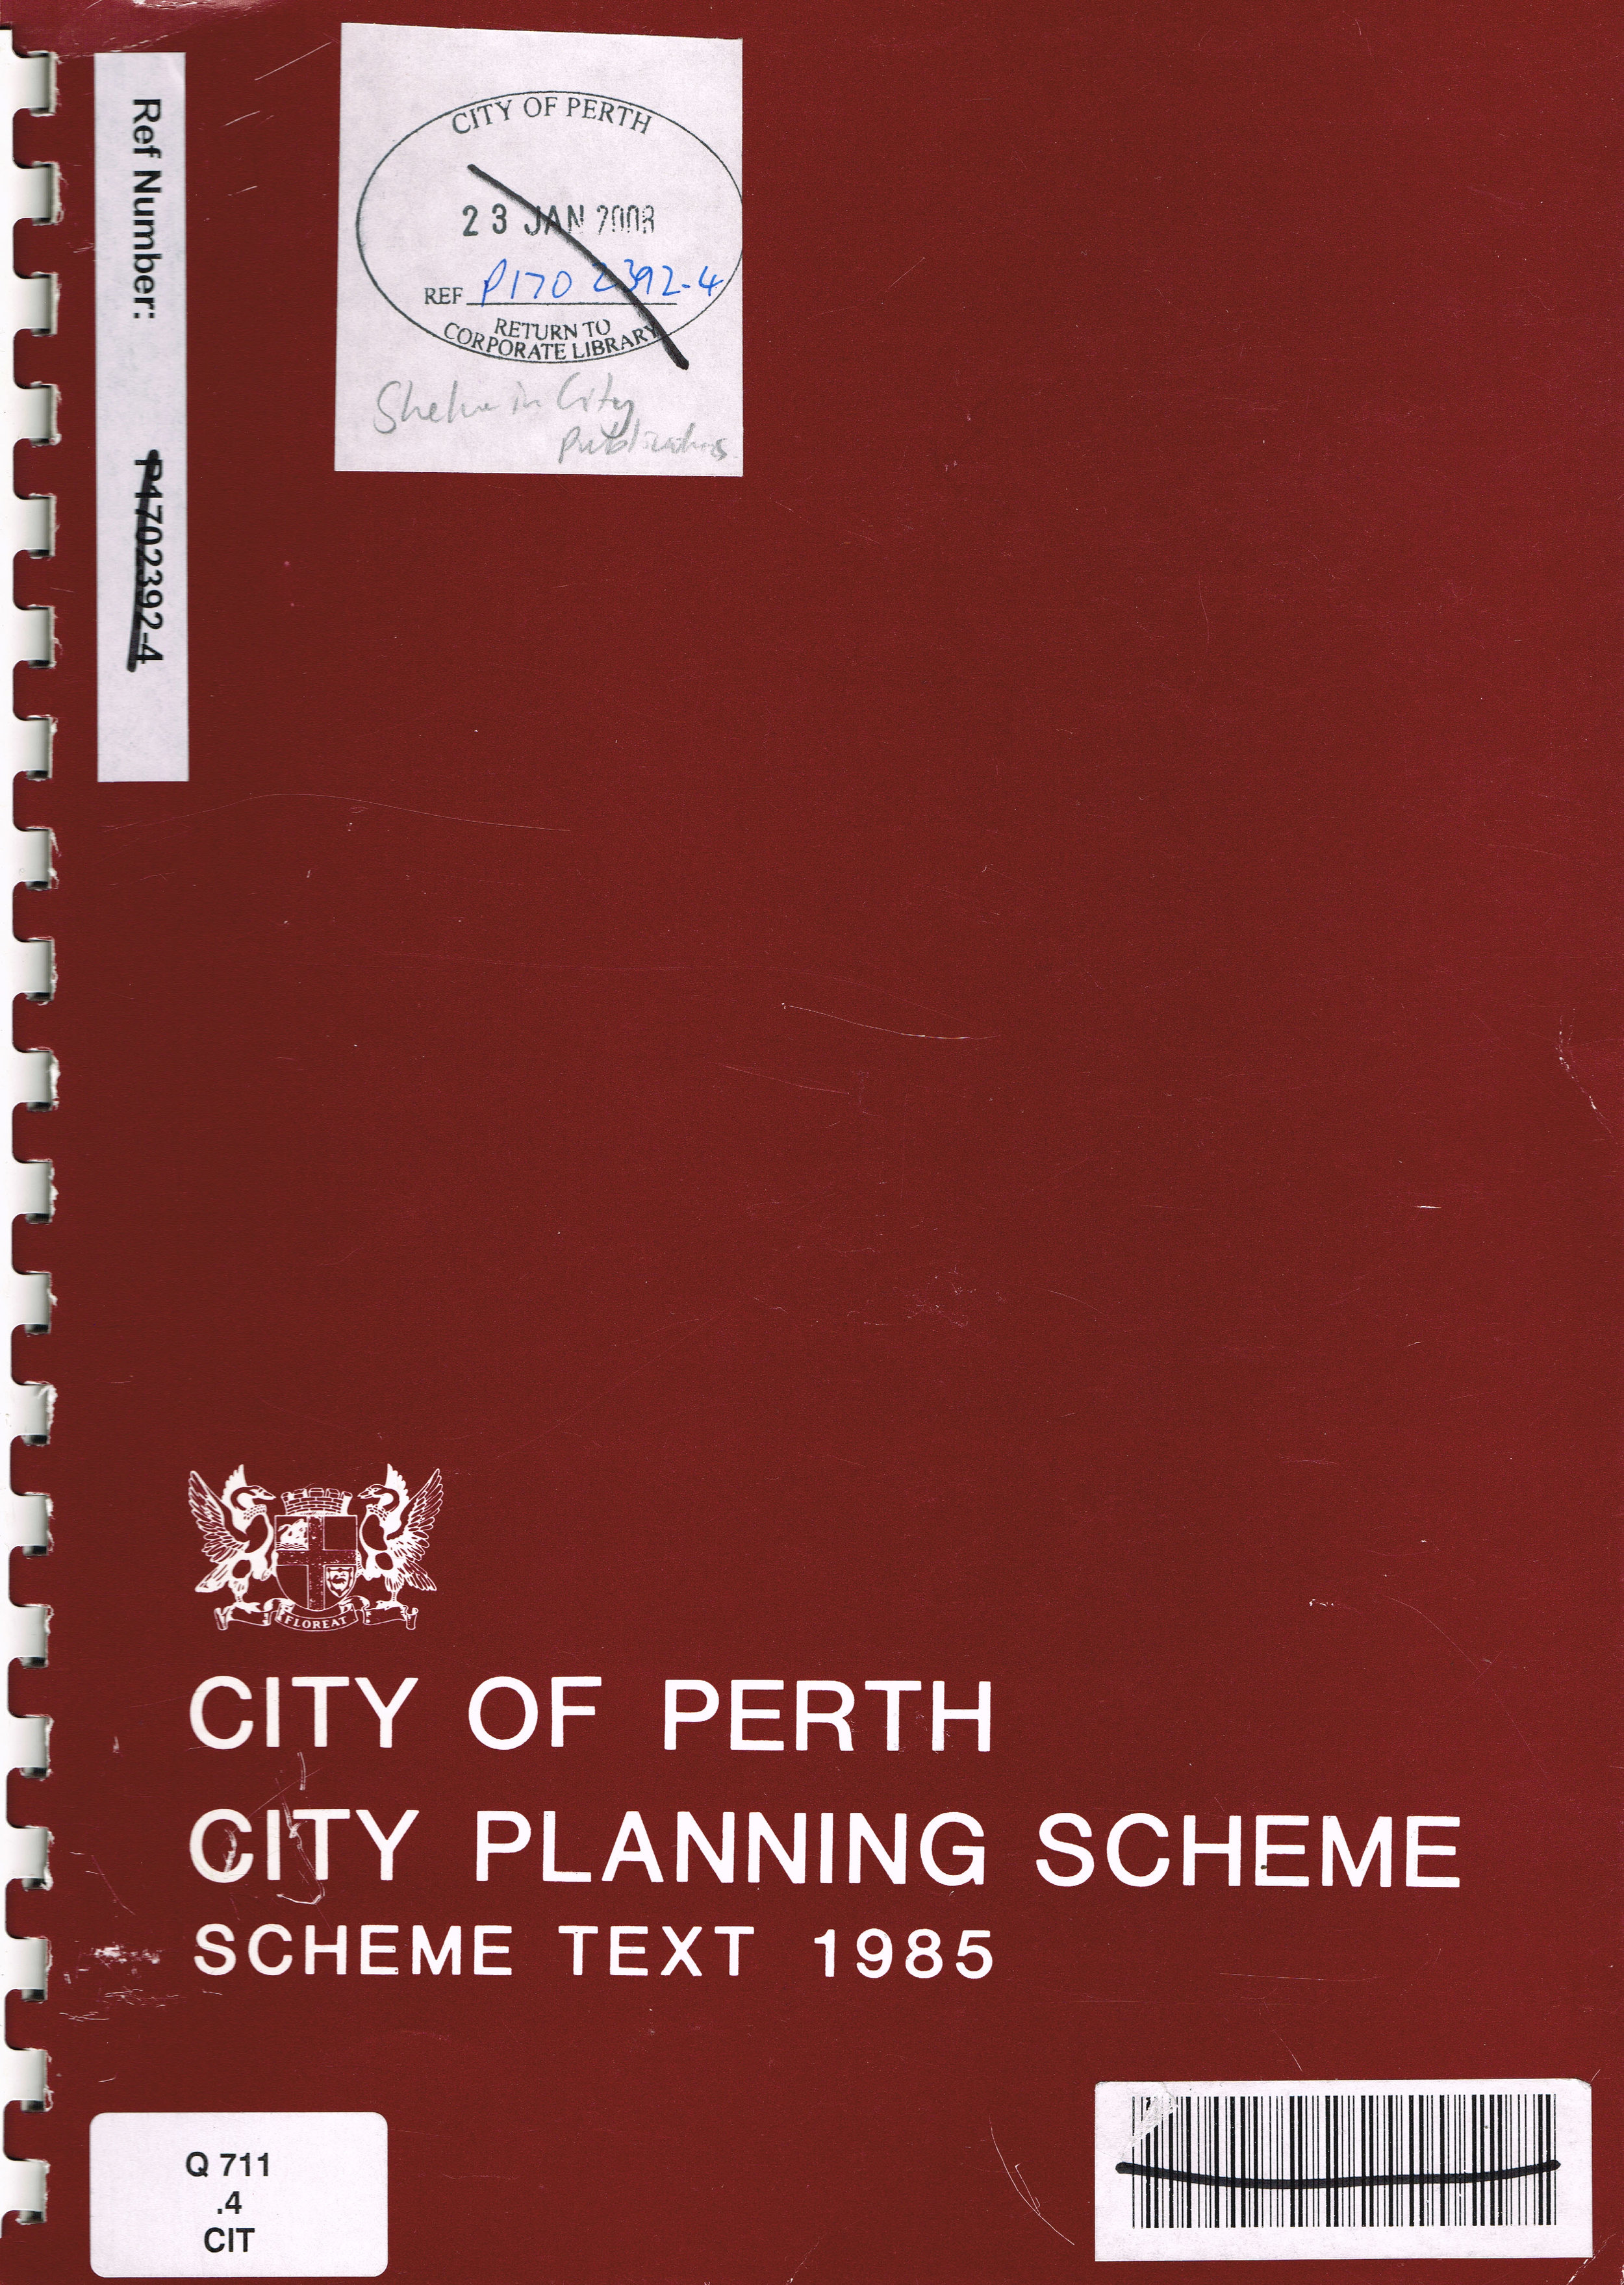 City Planning Scheme : Scheme Text 1985  City of Perth : The Planning Department Perth City Council